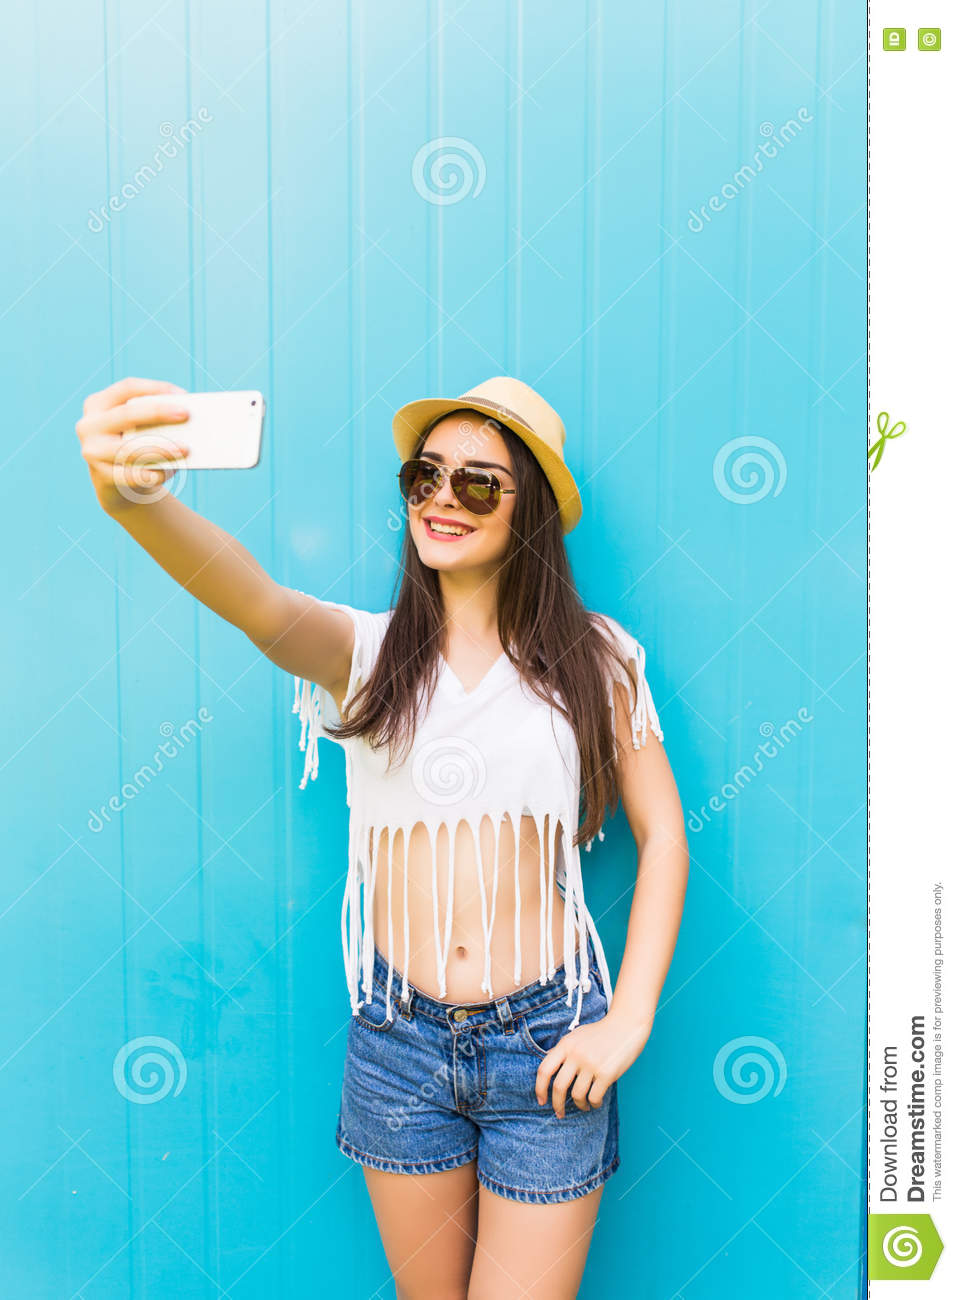 Woman Makes Self Portrait On Smartphone Over City Color